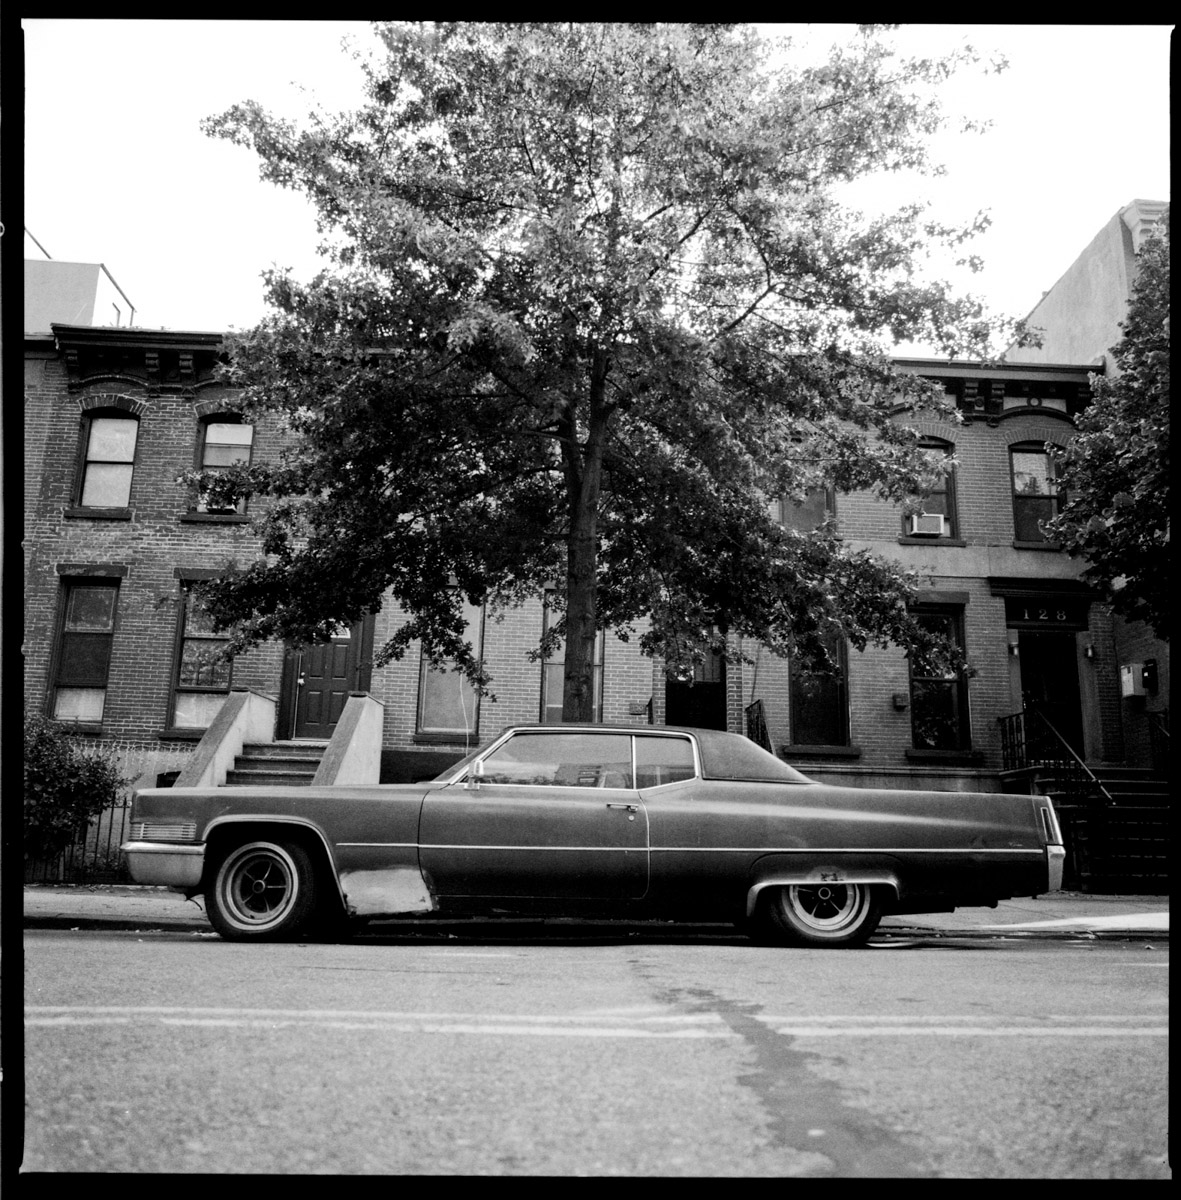 A black and white image of a car in Caroll Gardens, Brooklyn